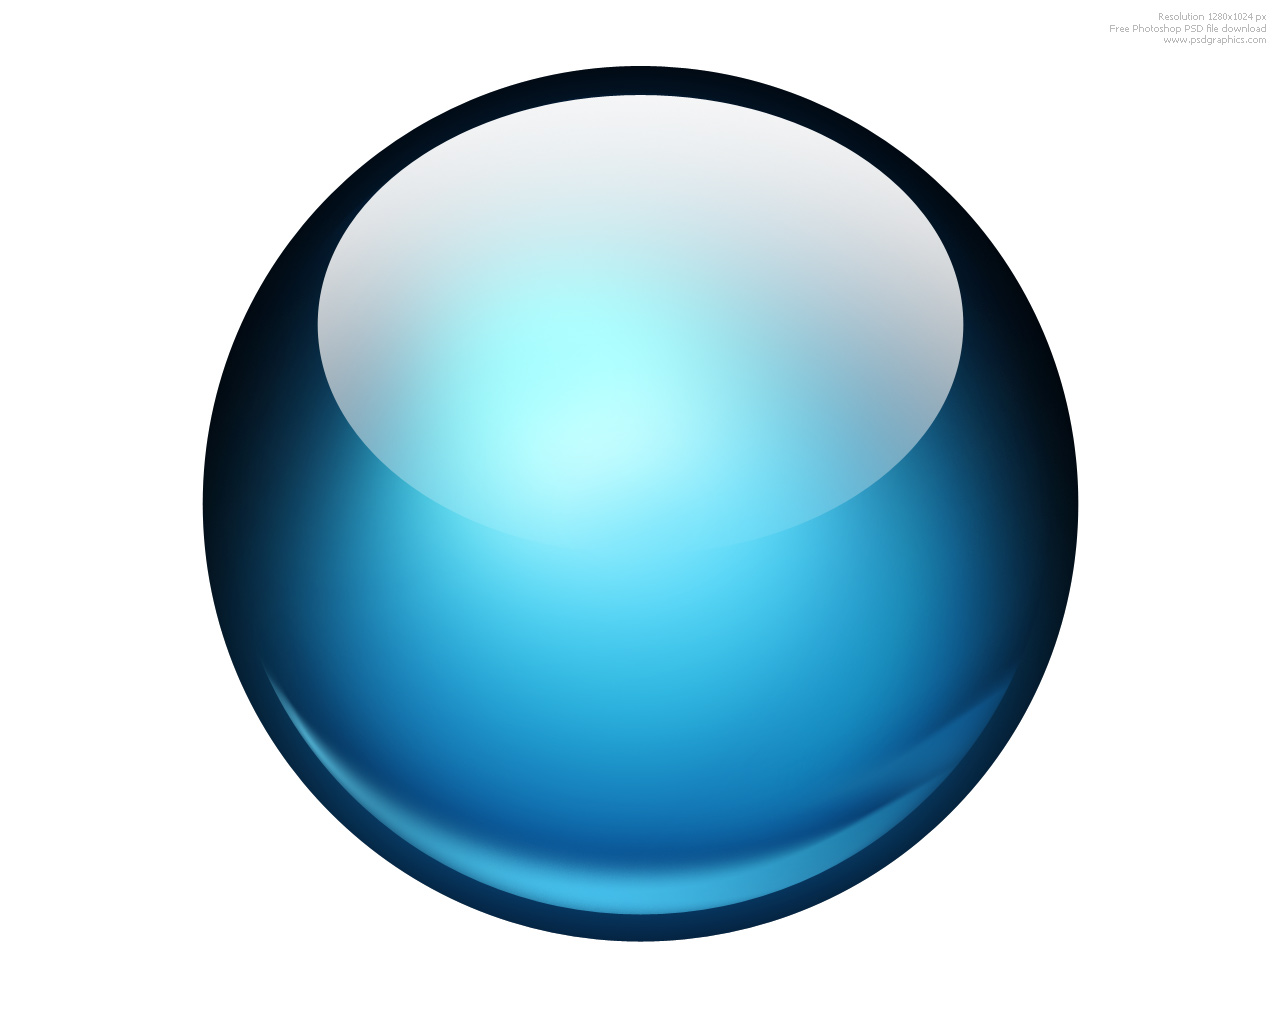 10 3D Ball Photoshop Images